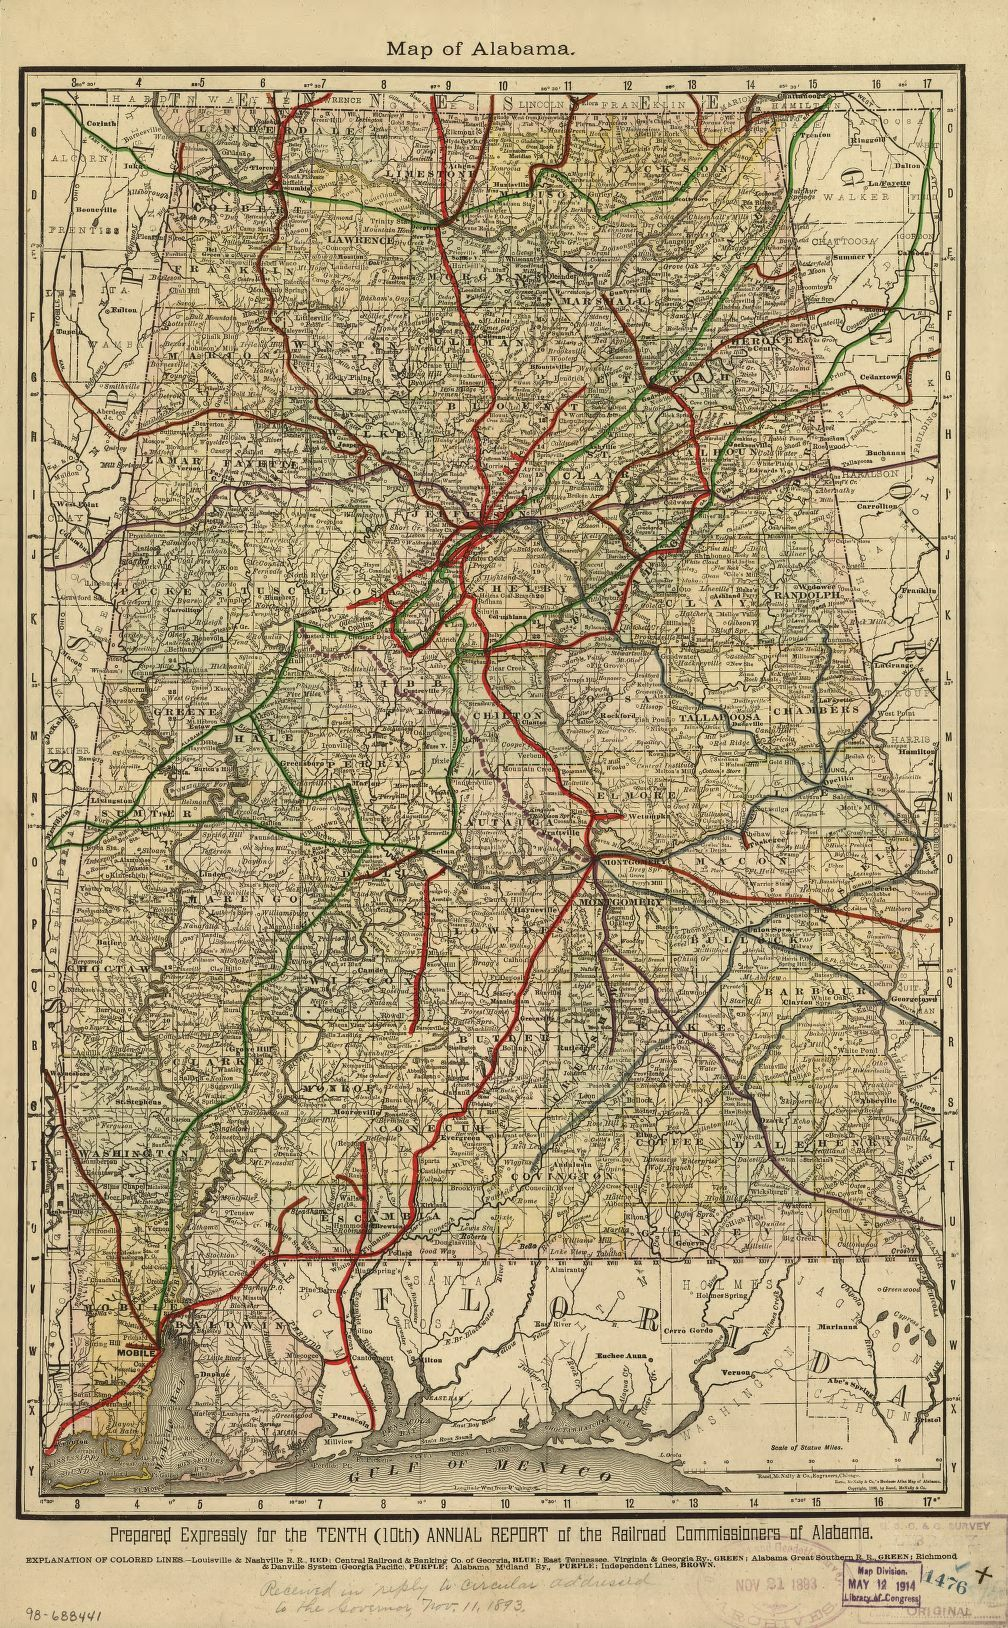 Map 1888 Alabama - Shows drainage, township and county boundaries, cities and towns, and the railroad network in colored lines